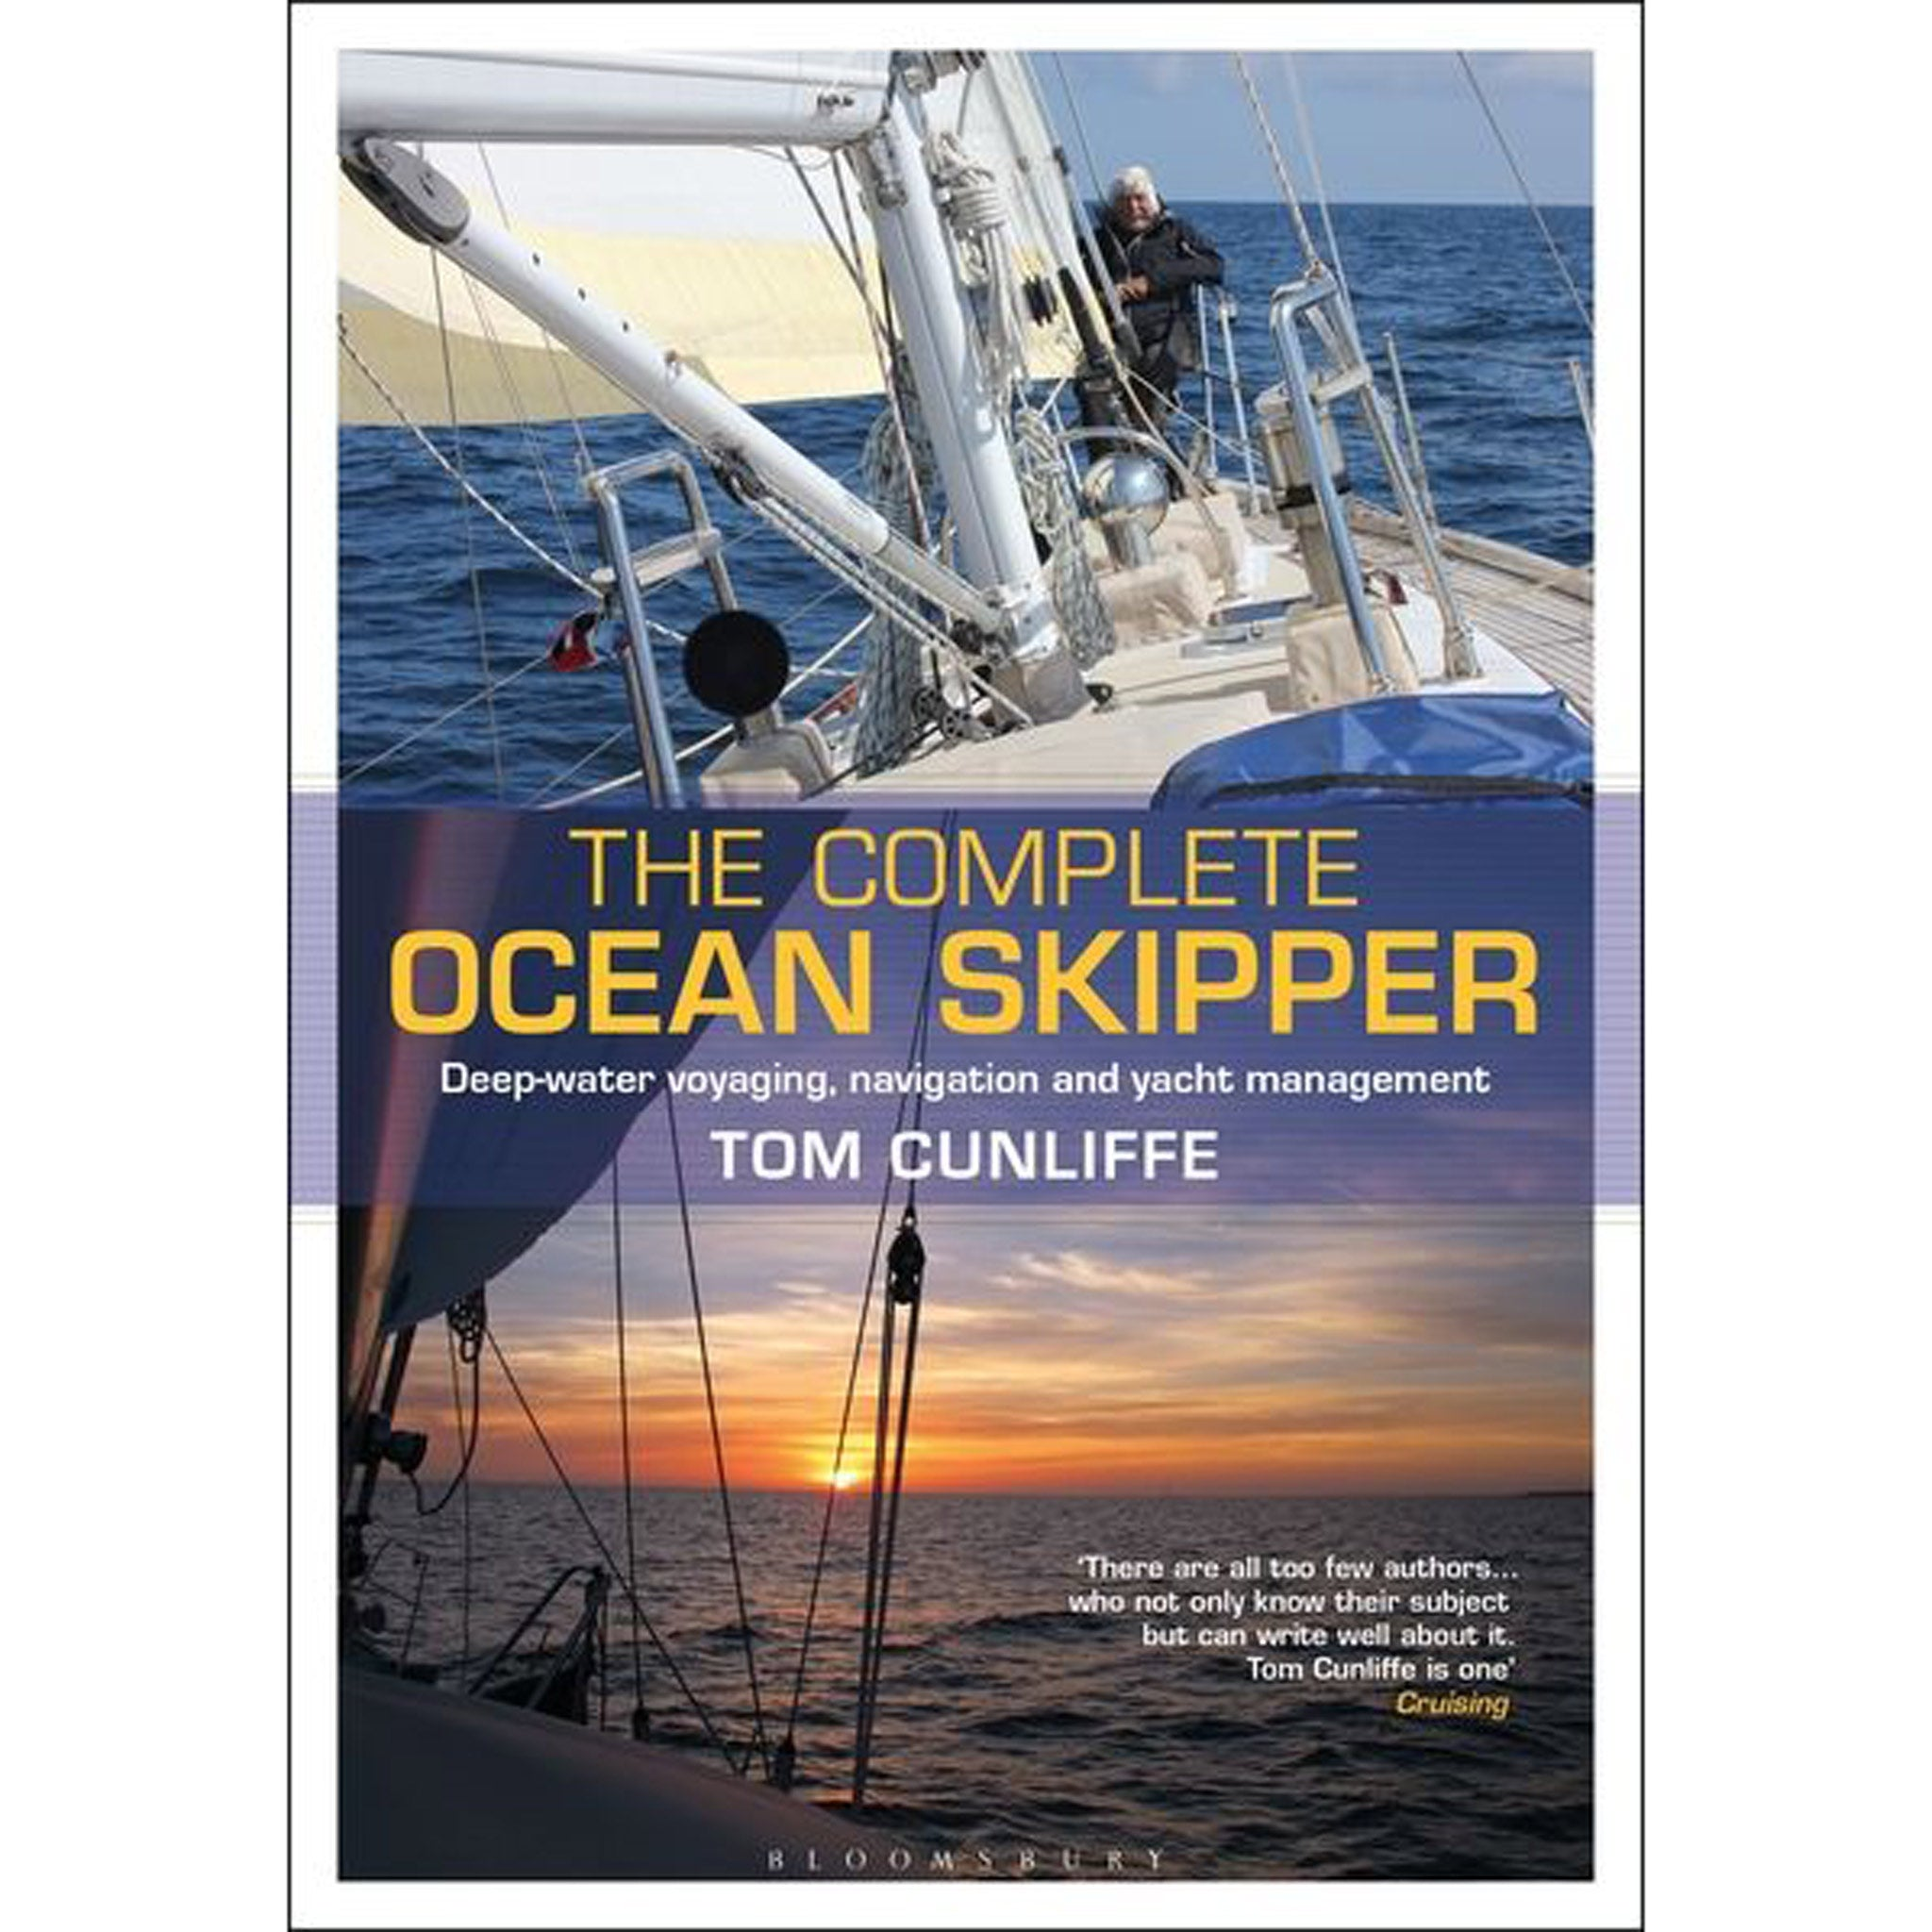 The Complete Ocean Skipper - Tom Cunliffe